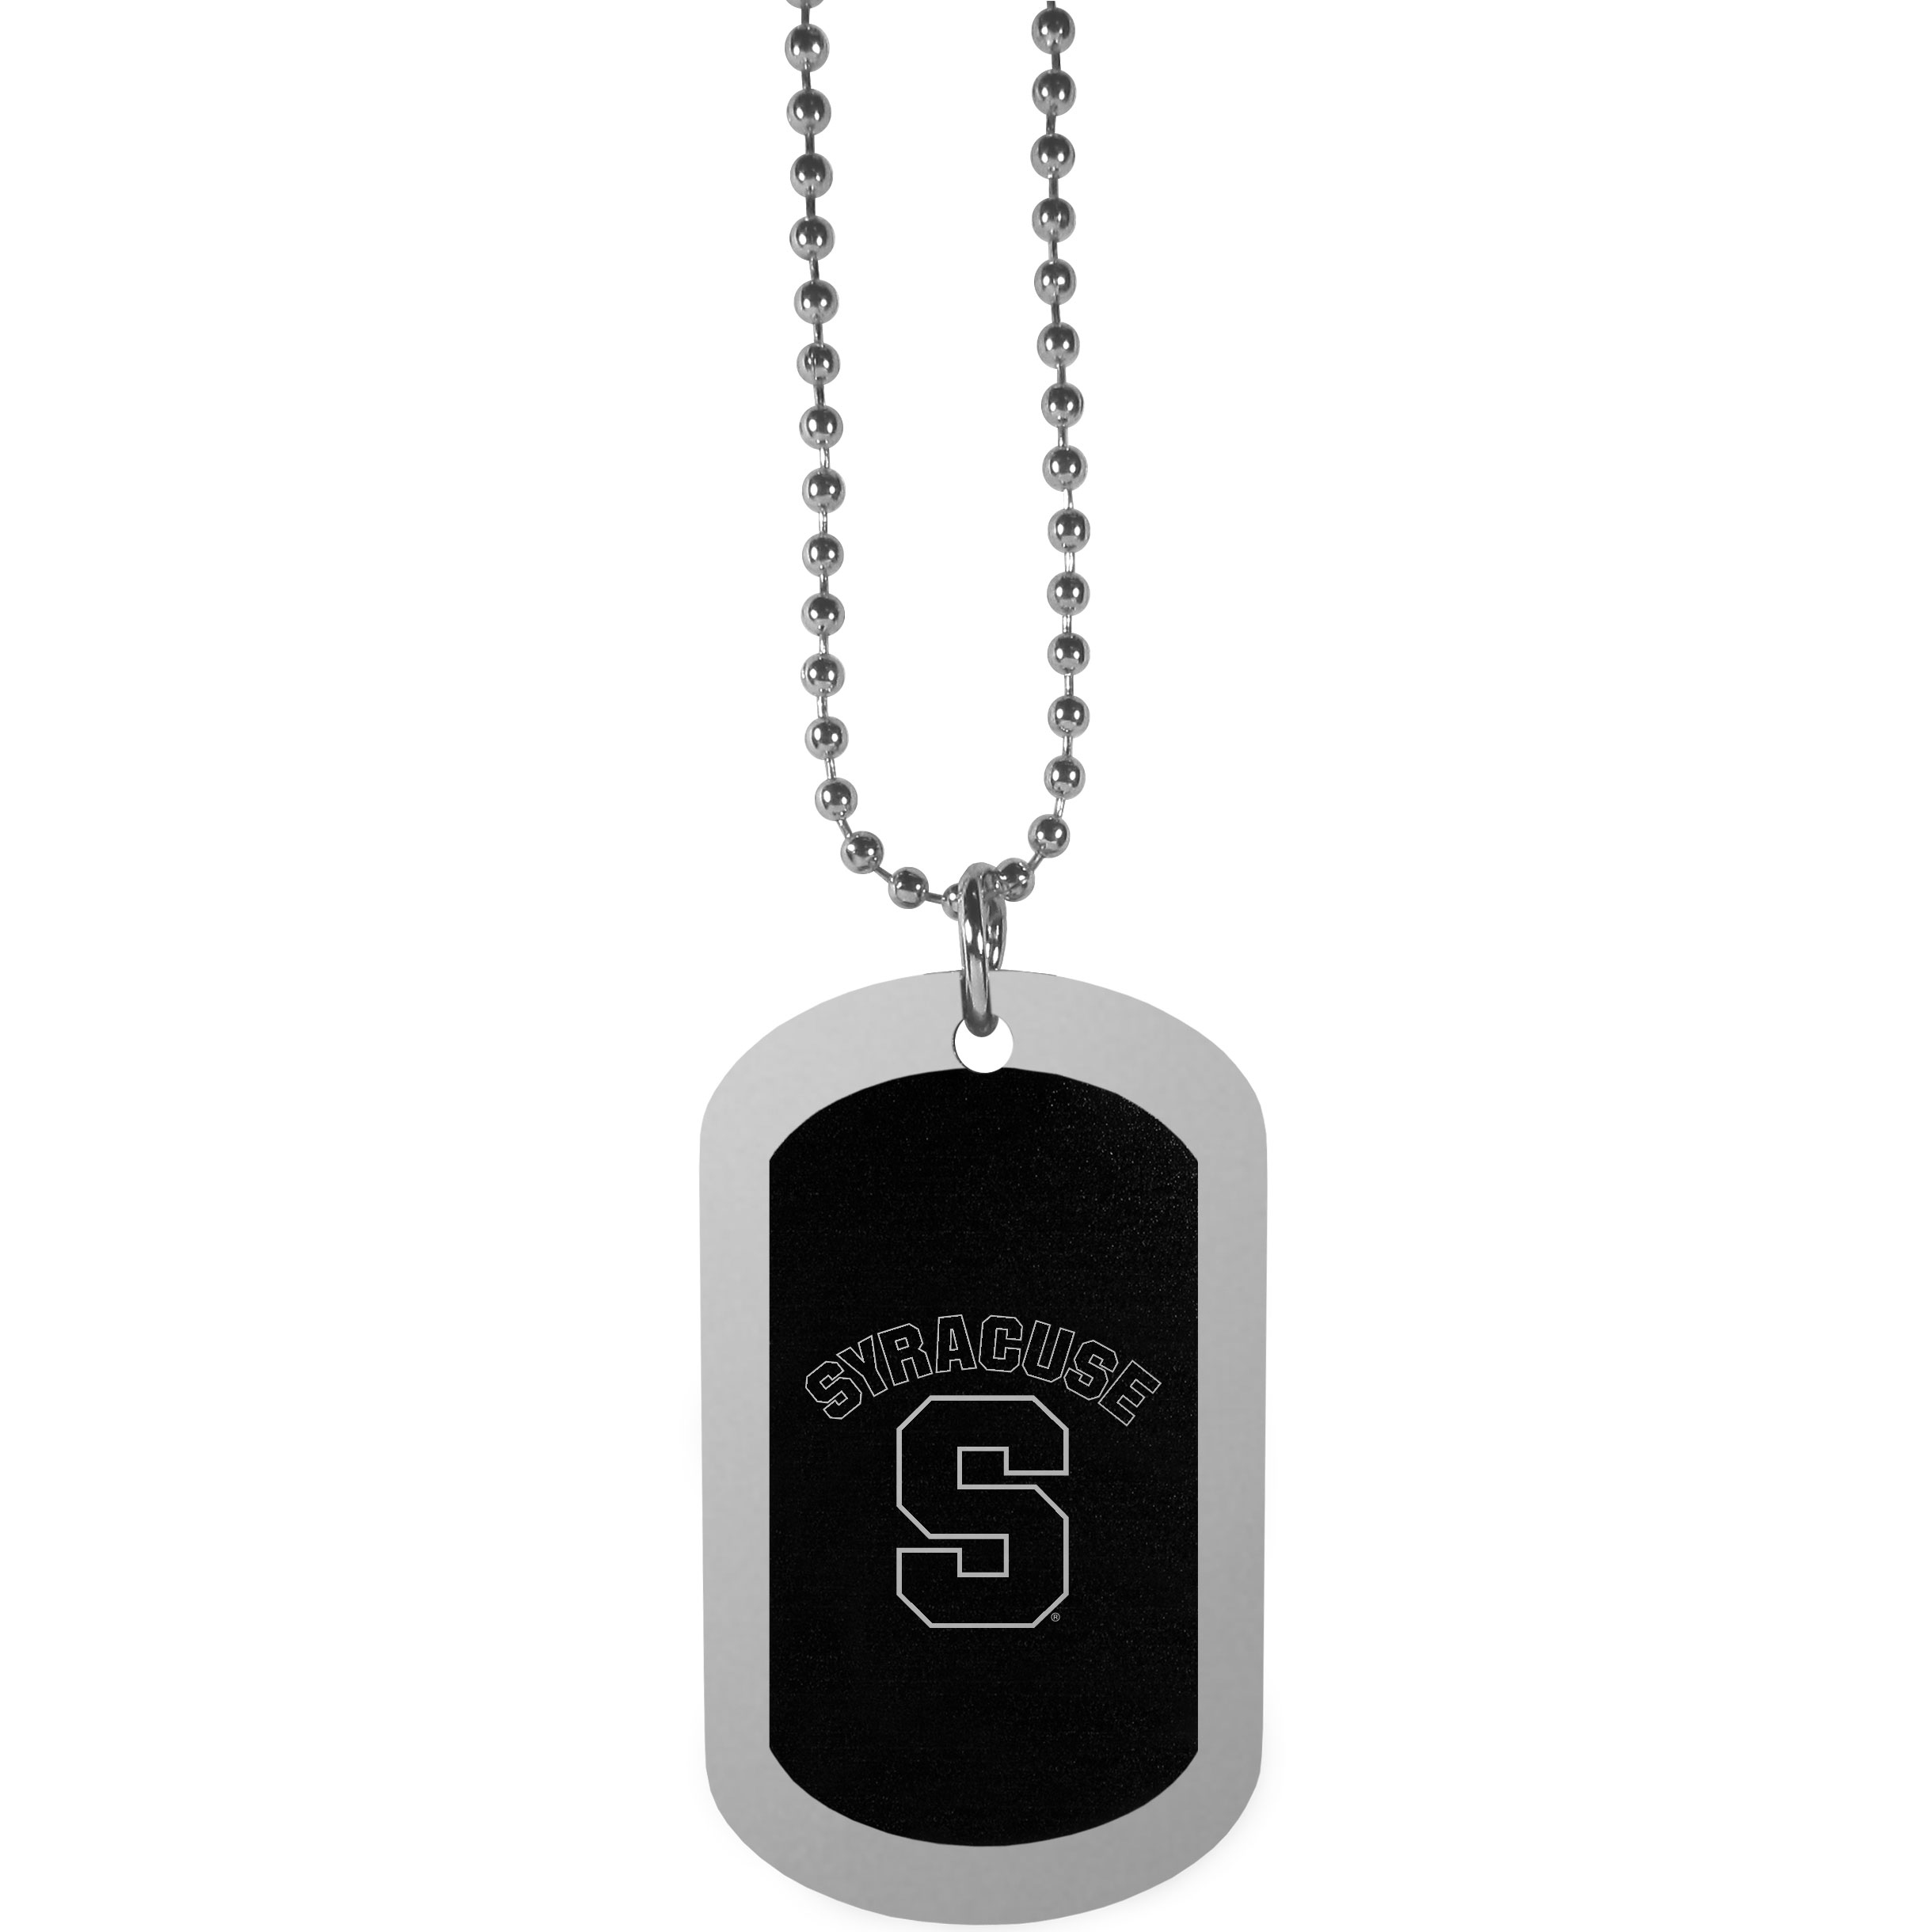 Syracuse Orange Chrome Tag Necklace - Dog tag necklaces are a fashion statement that is here to stay. The sporty version of the classic tag features a black printed over a high polish tag to create a bold and sporty look. The tag comes on a 26 inch ball chain with a ball and joint clasp. Any Syracuse Orange would be proud to wear this attractive fashion accessory.